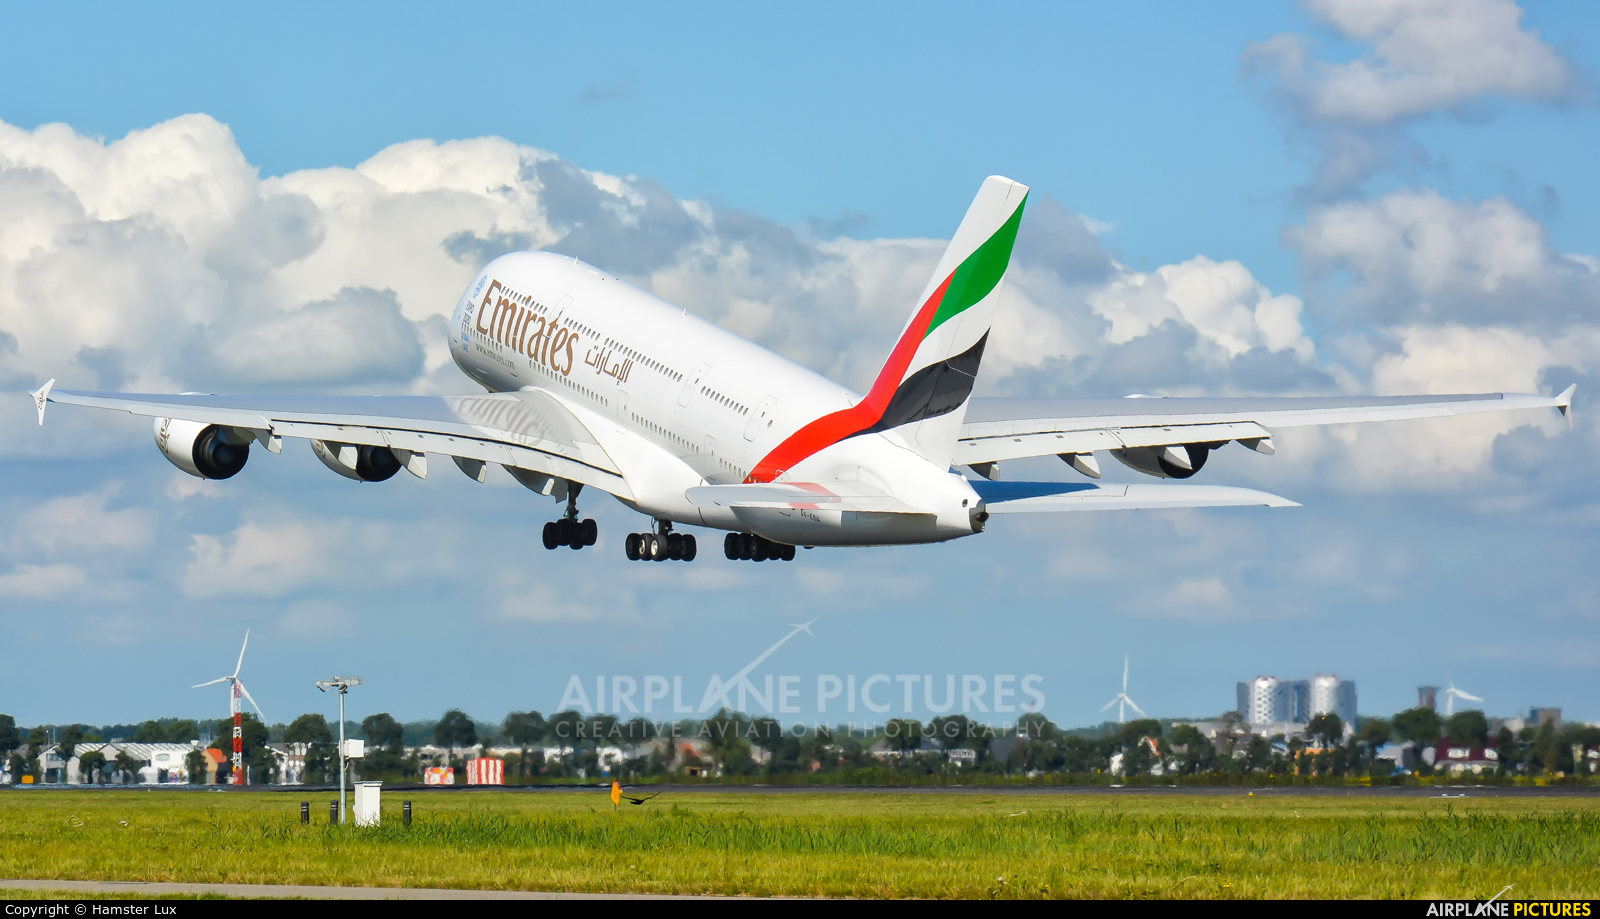 Emirates Airlines A6-EOX aircraft at Amsterdam - Schiphol